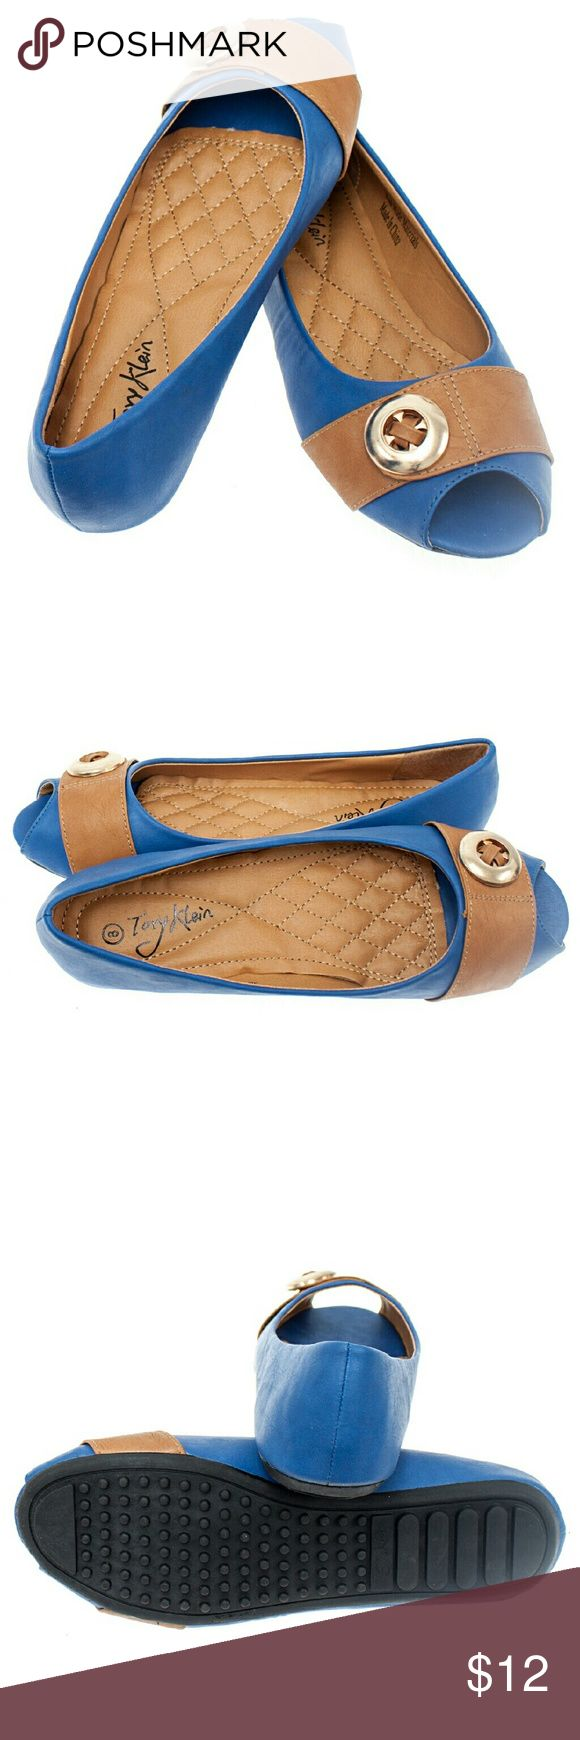 Women Open Toe Buckle Flats, b-1372, Royal Blue Brand new Tory K woman ballerina flats with a peep toe and a button-adorned strip buckle in the front. Soft cushioned sole, very comfortable, true to size. Bubbled bottom sole for extra traction. A true staple in ladies shoes fashion! Tory Klein  Shoes Flats & Loafers